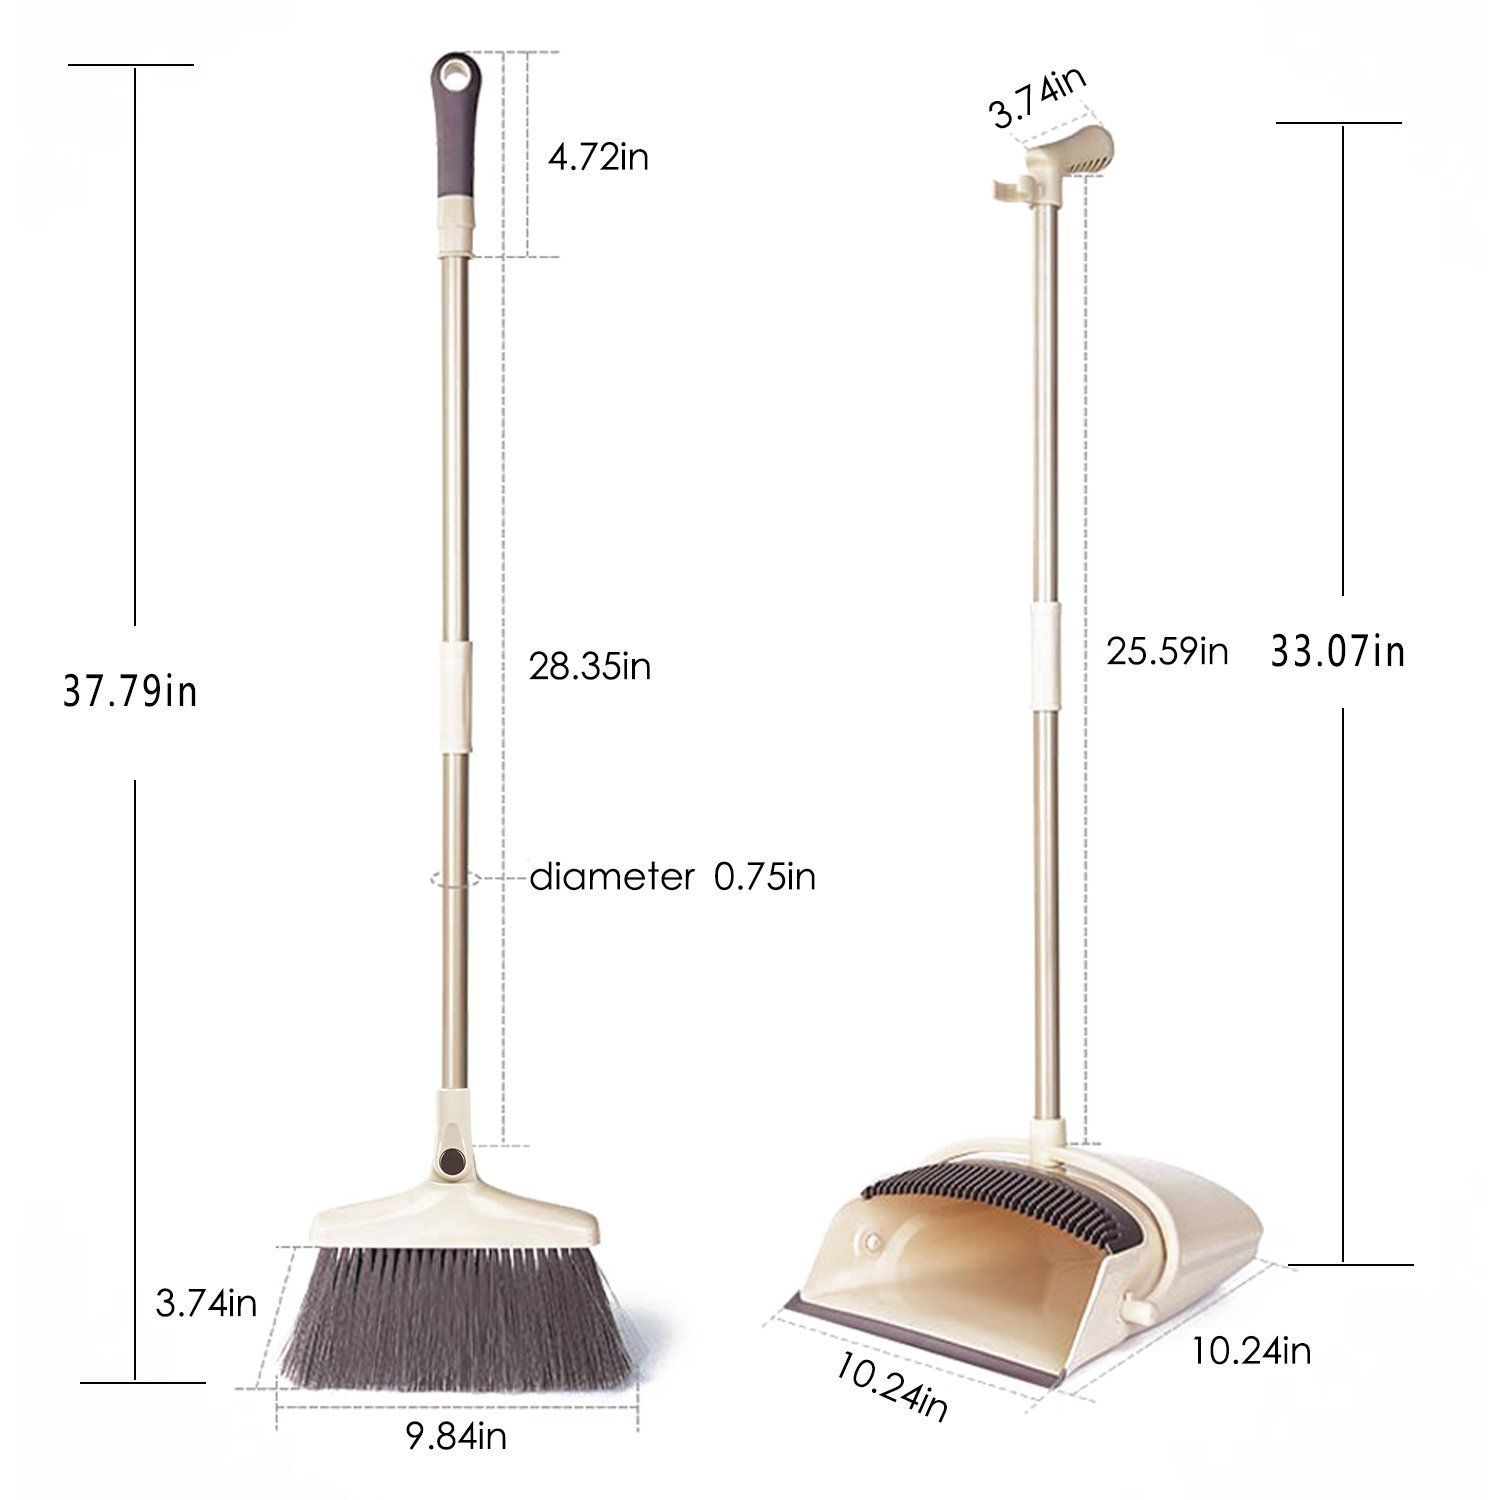 Allcr Rotatable Broom And Dustpan Set Artifact Standing Upright Foldable Set Dustpan And Brush Set For Sweeping Of Dustpans And Brushes Broom And Dustpan Broom